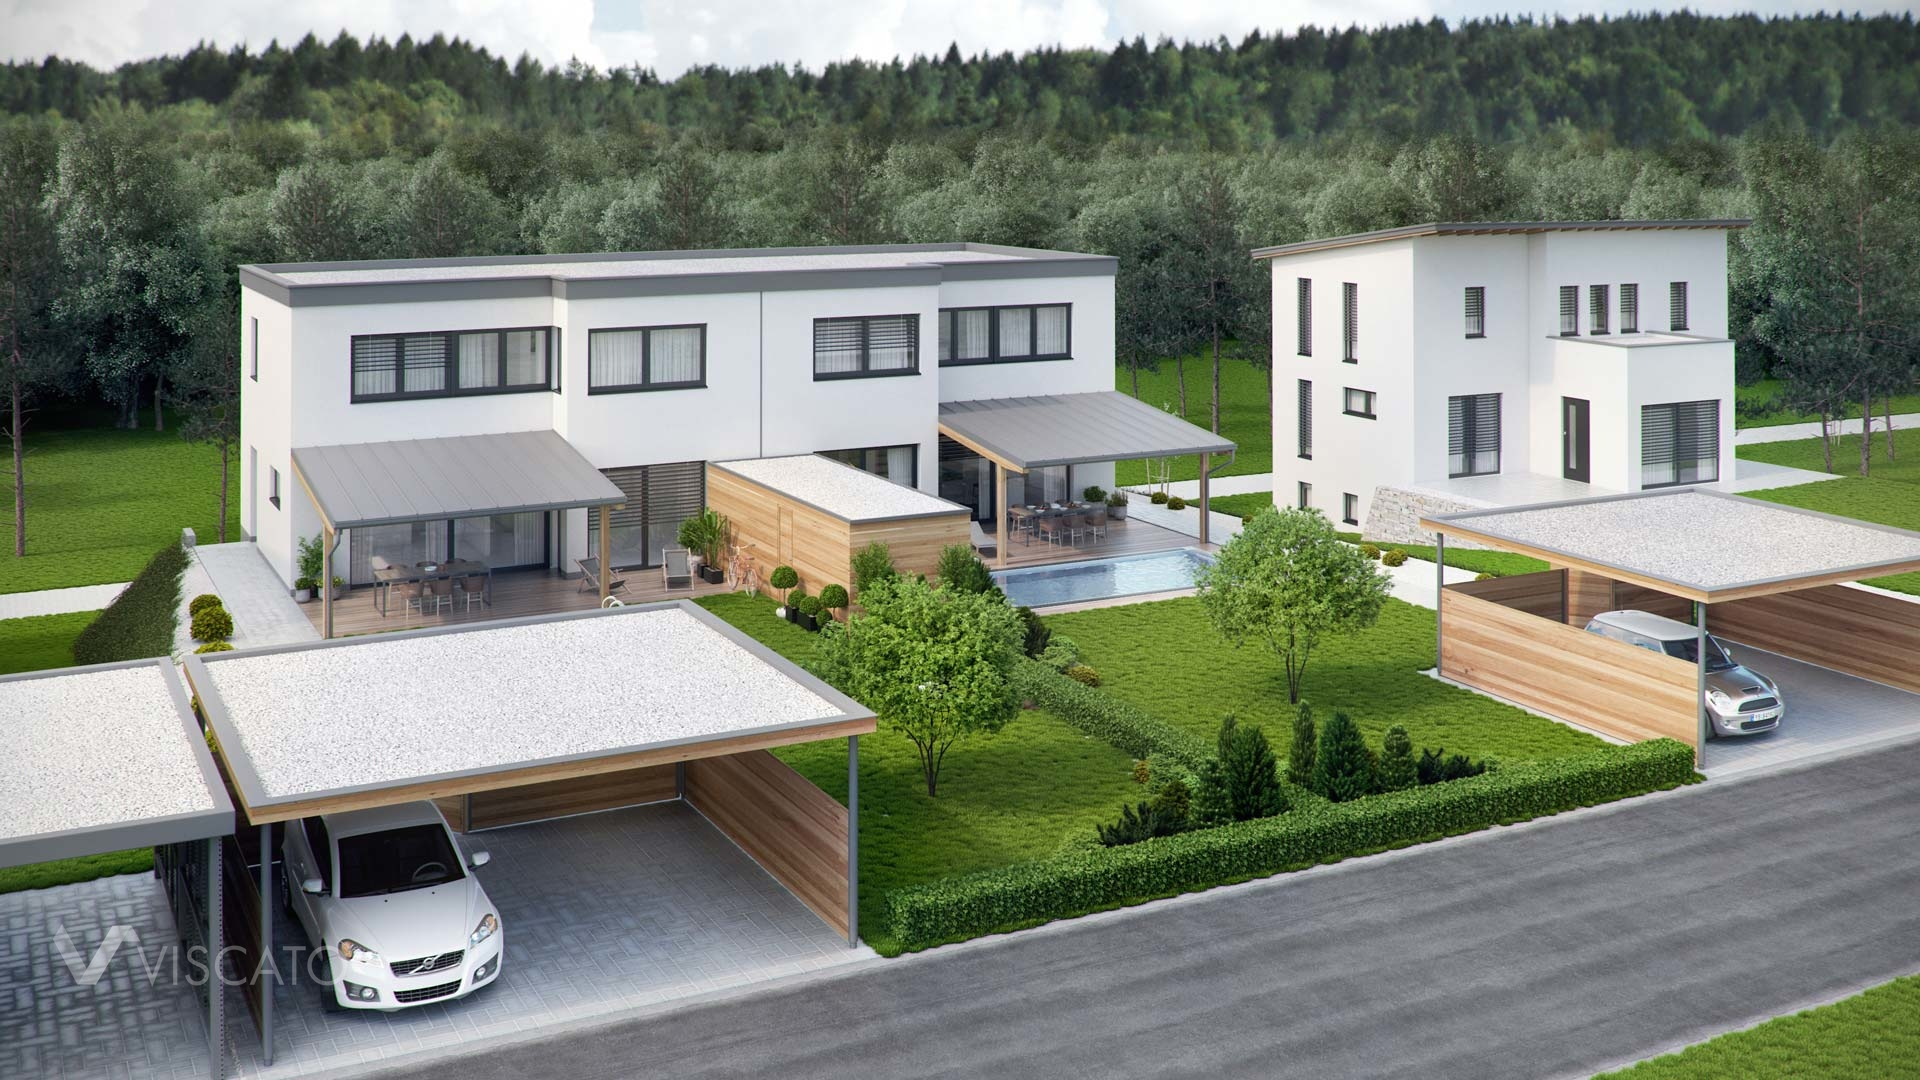 3D visualisation of a modern duplex house- front view